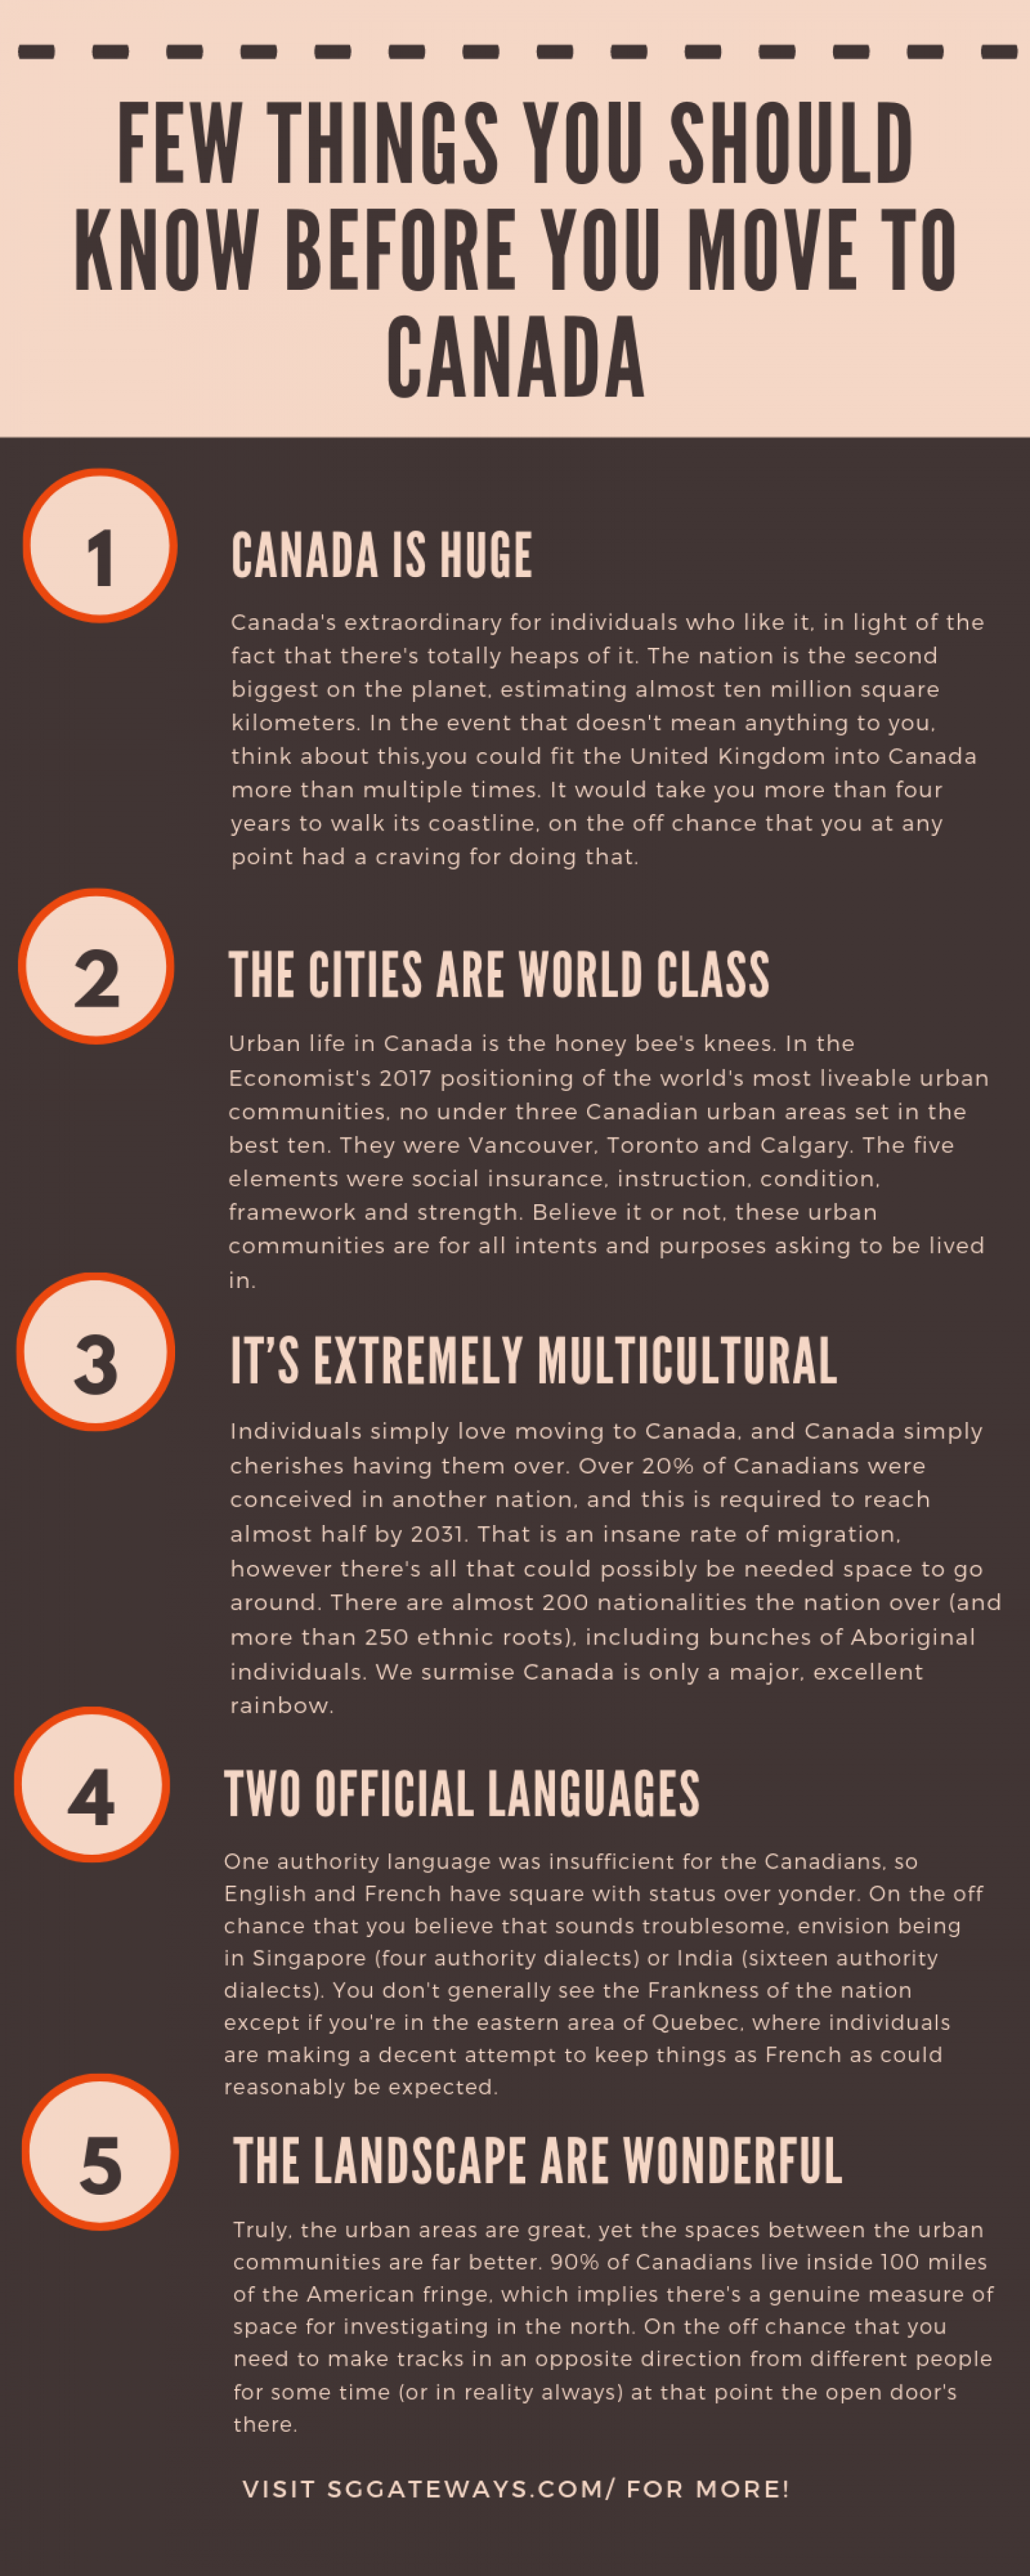 Few Things You Should Know Before You Move to Canada Infographic